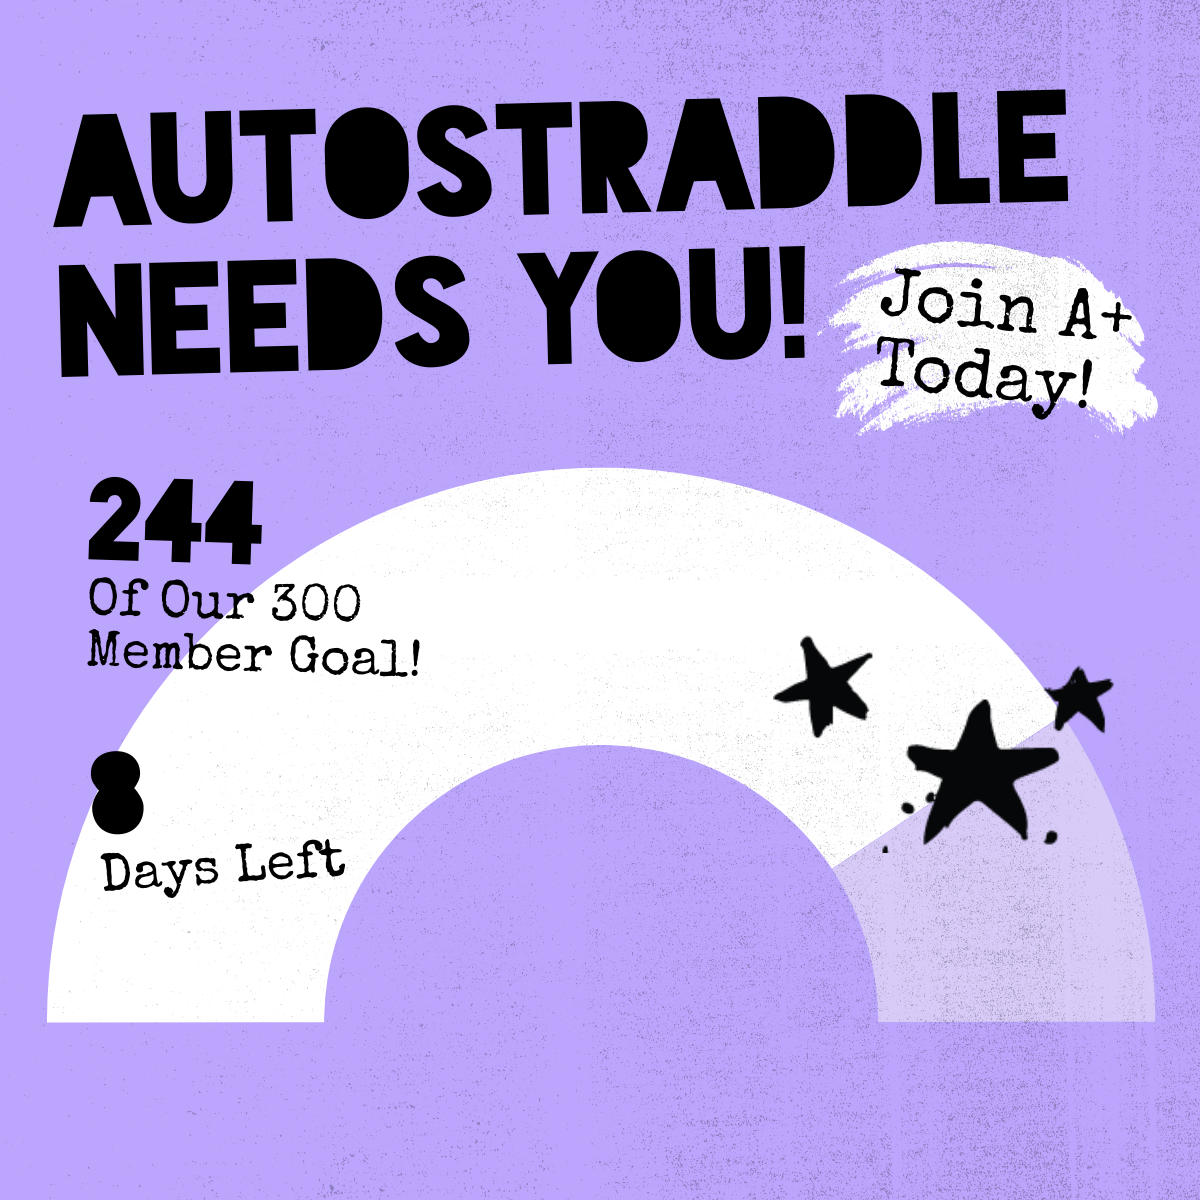 Autostraddle Needs You! Join A+ Today! 244 of our 300 Member Goal! 8 Days Left